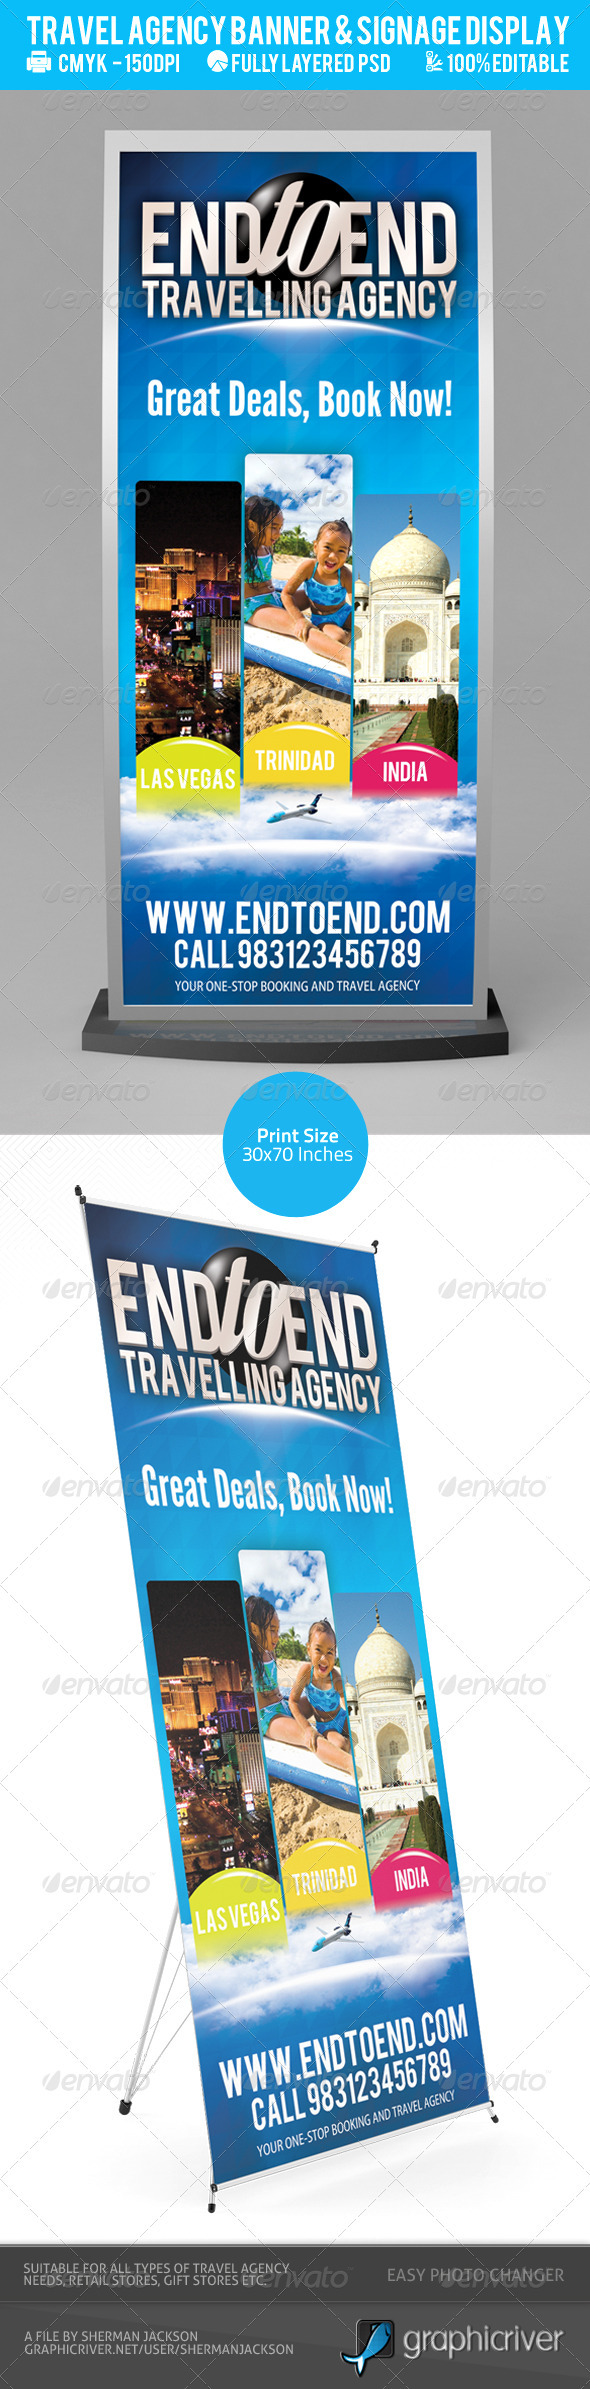 Travel Agency Banner & Signage Display PSD - Signage Print Templates